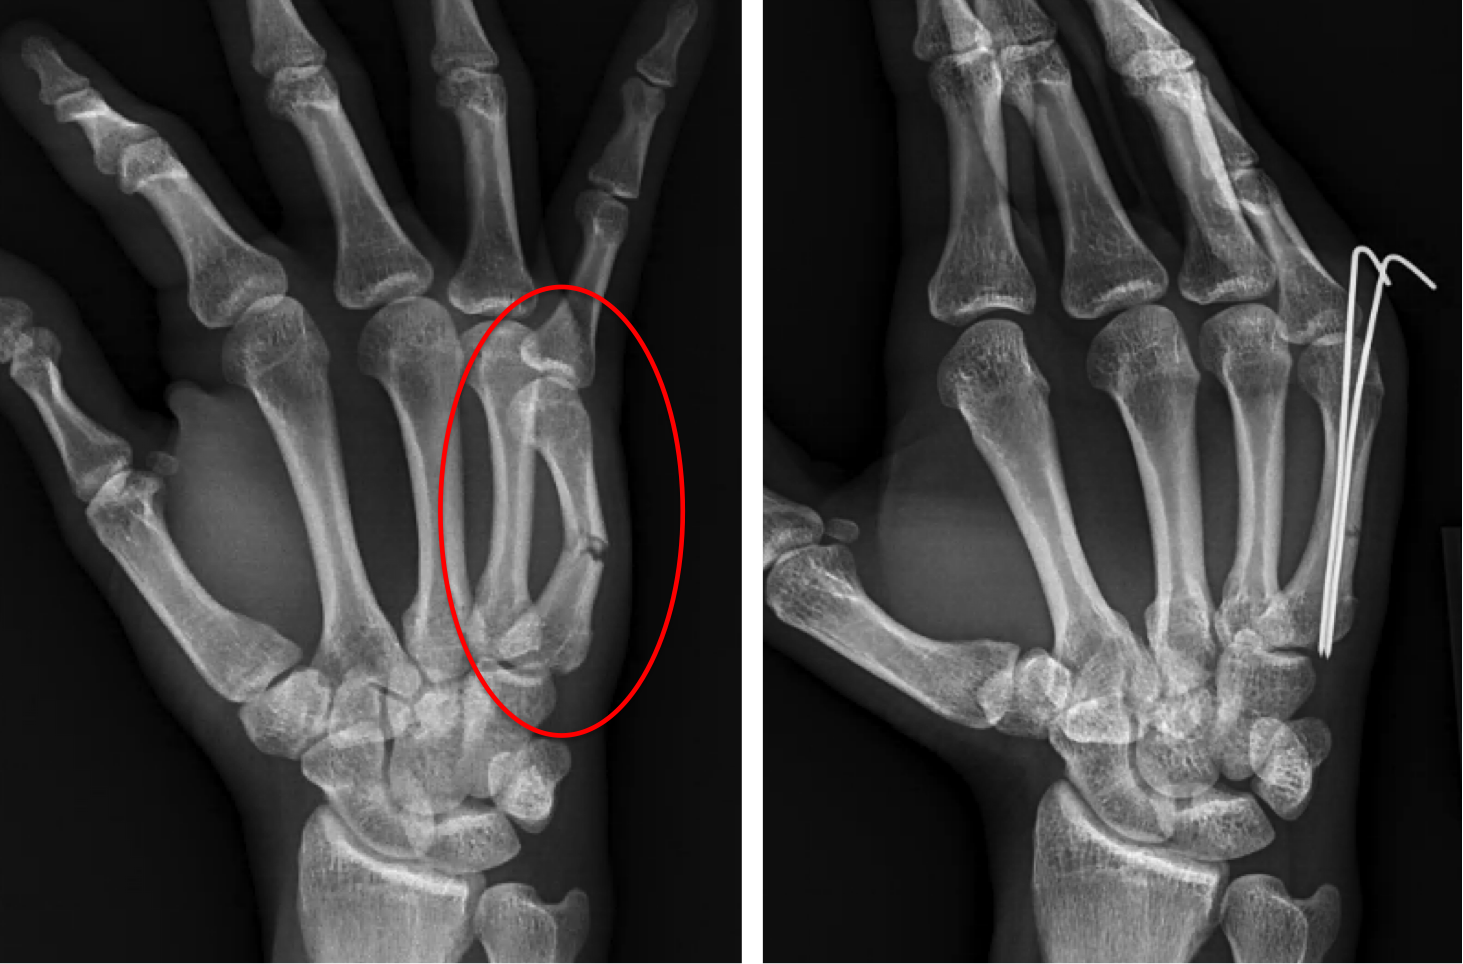 Fracture of the 5th (small finger) metacarpal bone. When hand fractures are notably bent, or mal-rotated, surgery may improve alignment and motion of the finger. The images here show a small outpatient procedure. The fracture is reduced, or lined up, by manipulating the hand (no incision made). Next, 2 temporary pins are placed though the skin to hold the alignment during fracture healing. The pins are typically removed in the office 2-3 weeks after being placed. Motion is started at that point. More vigorous activities, such as lifting and strengthening, are started ~6 weeks after surgery.